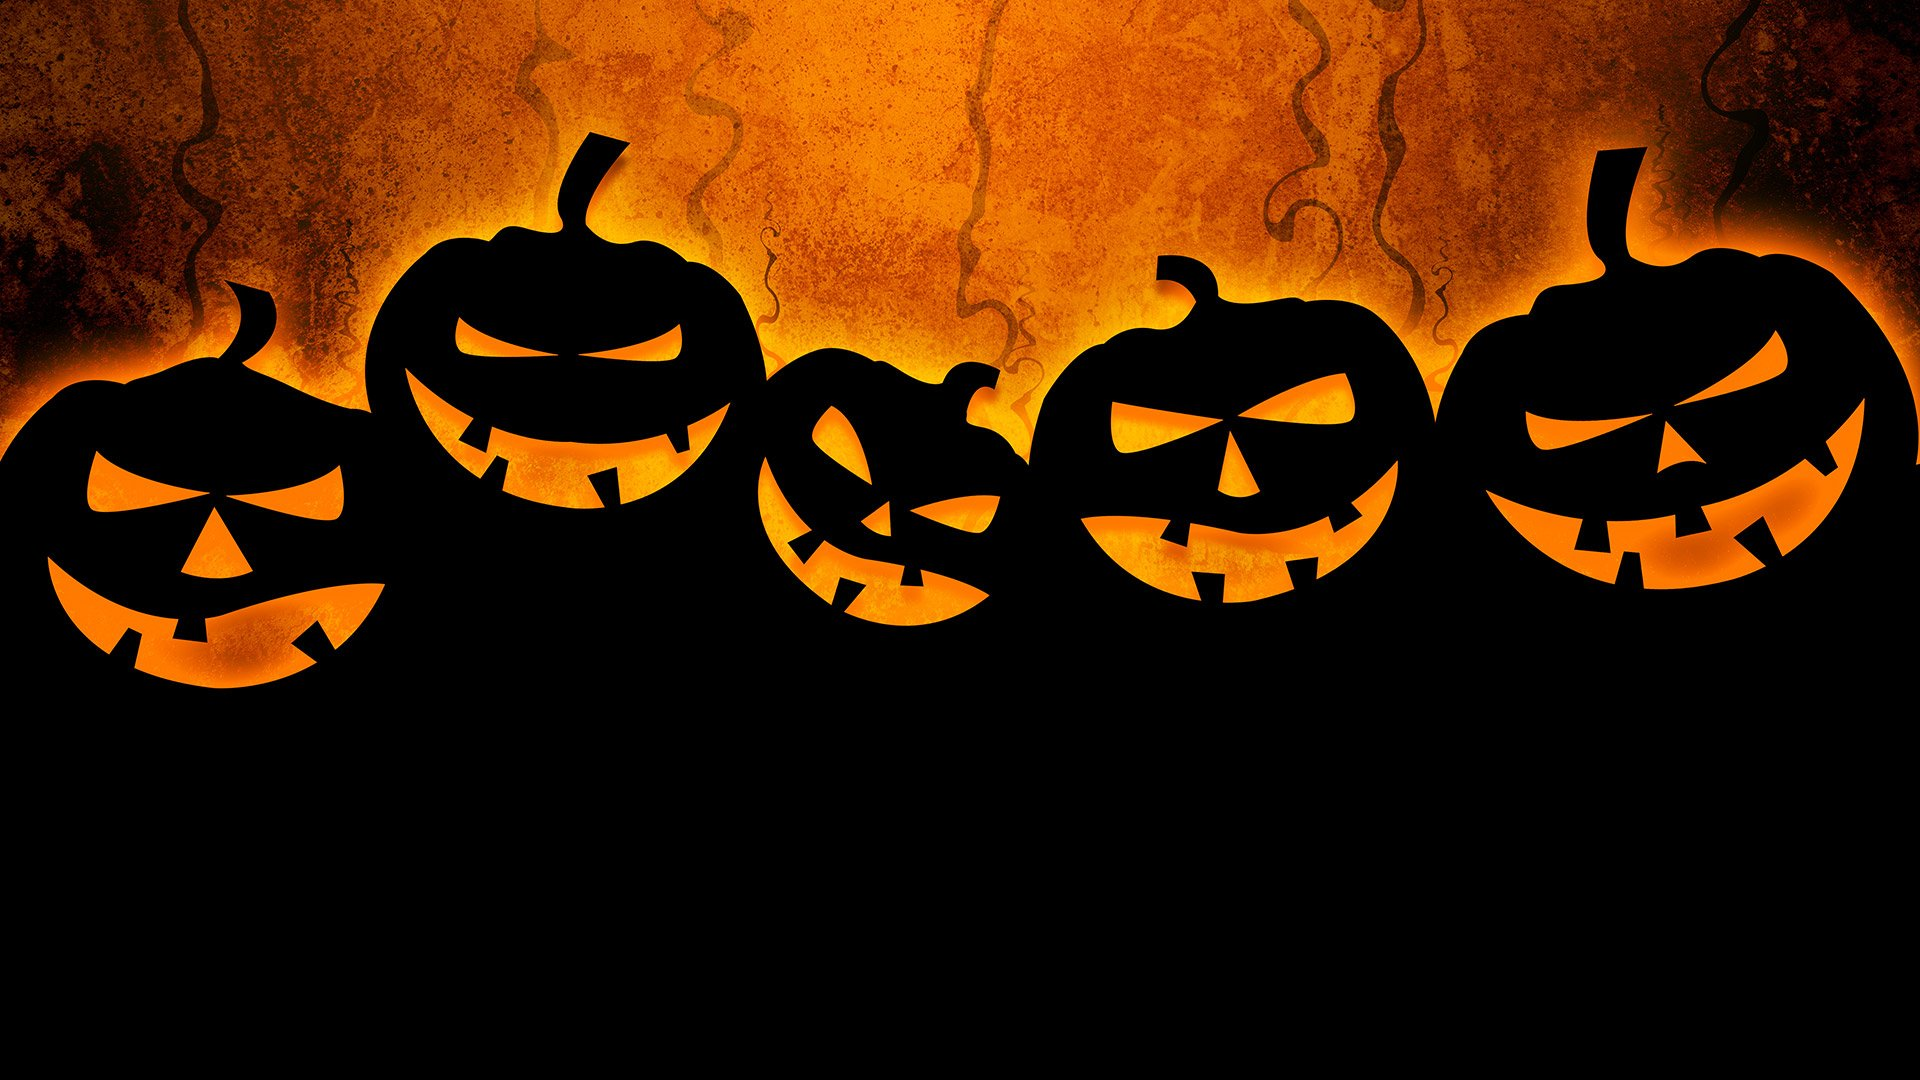 Halloween Hd Wallpaper Background Image 1920x1080 Id 748321